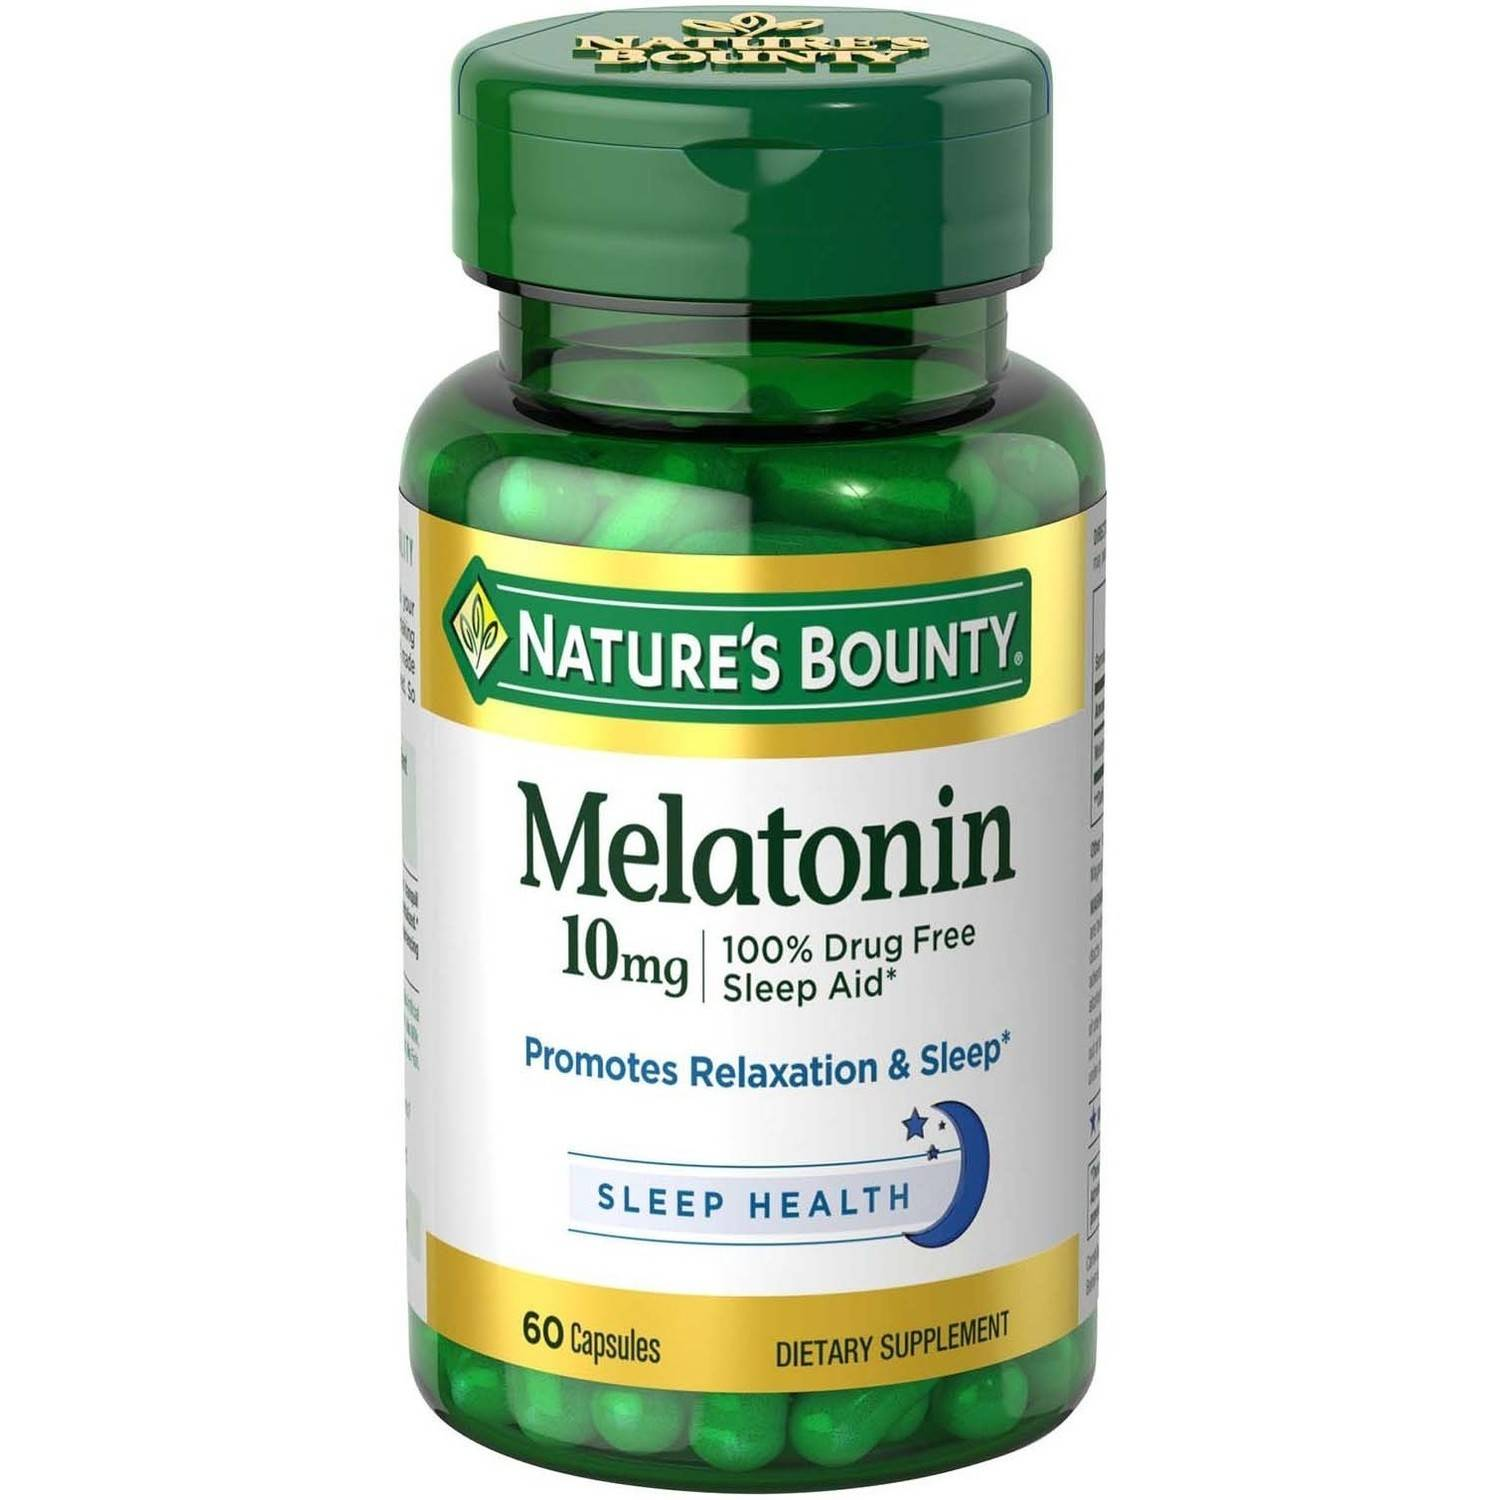 Nature's Bounty Melatonin Dietary Supplement Capsules, 10mg, 60 count